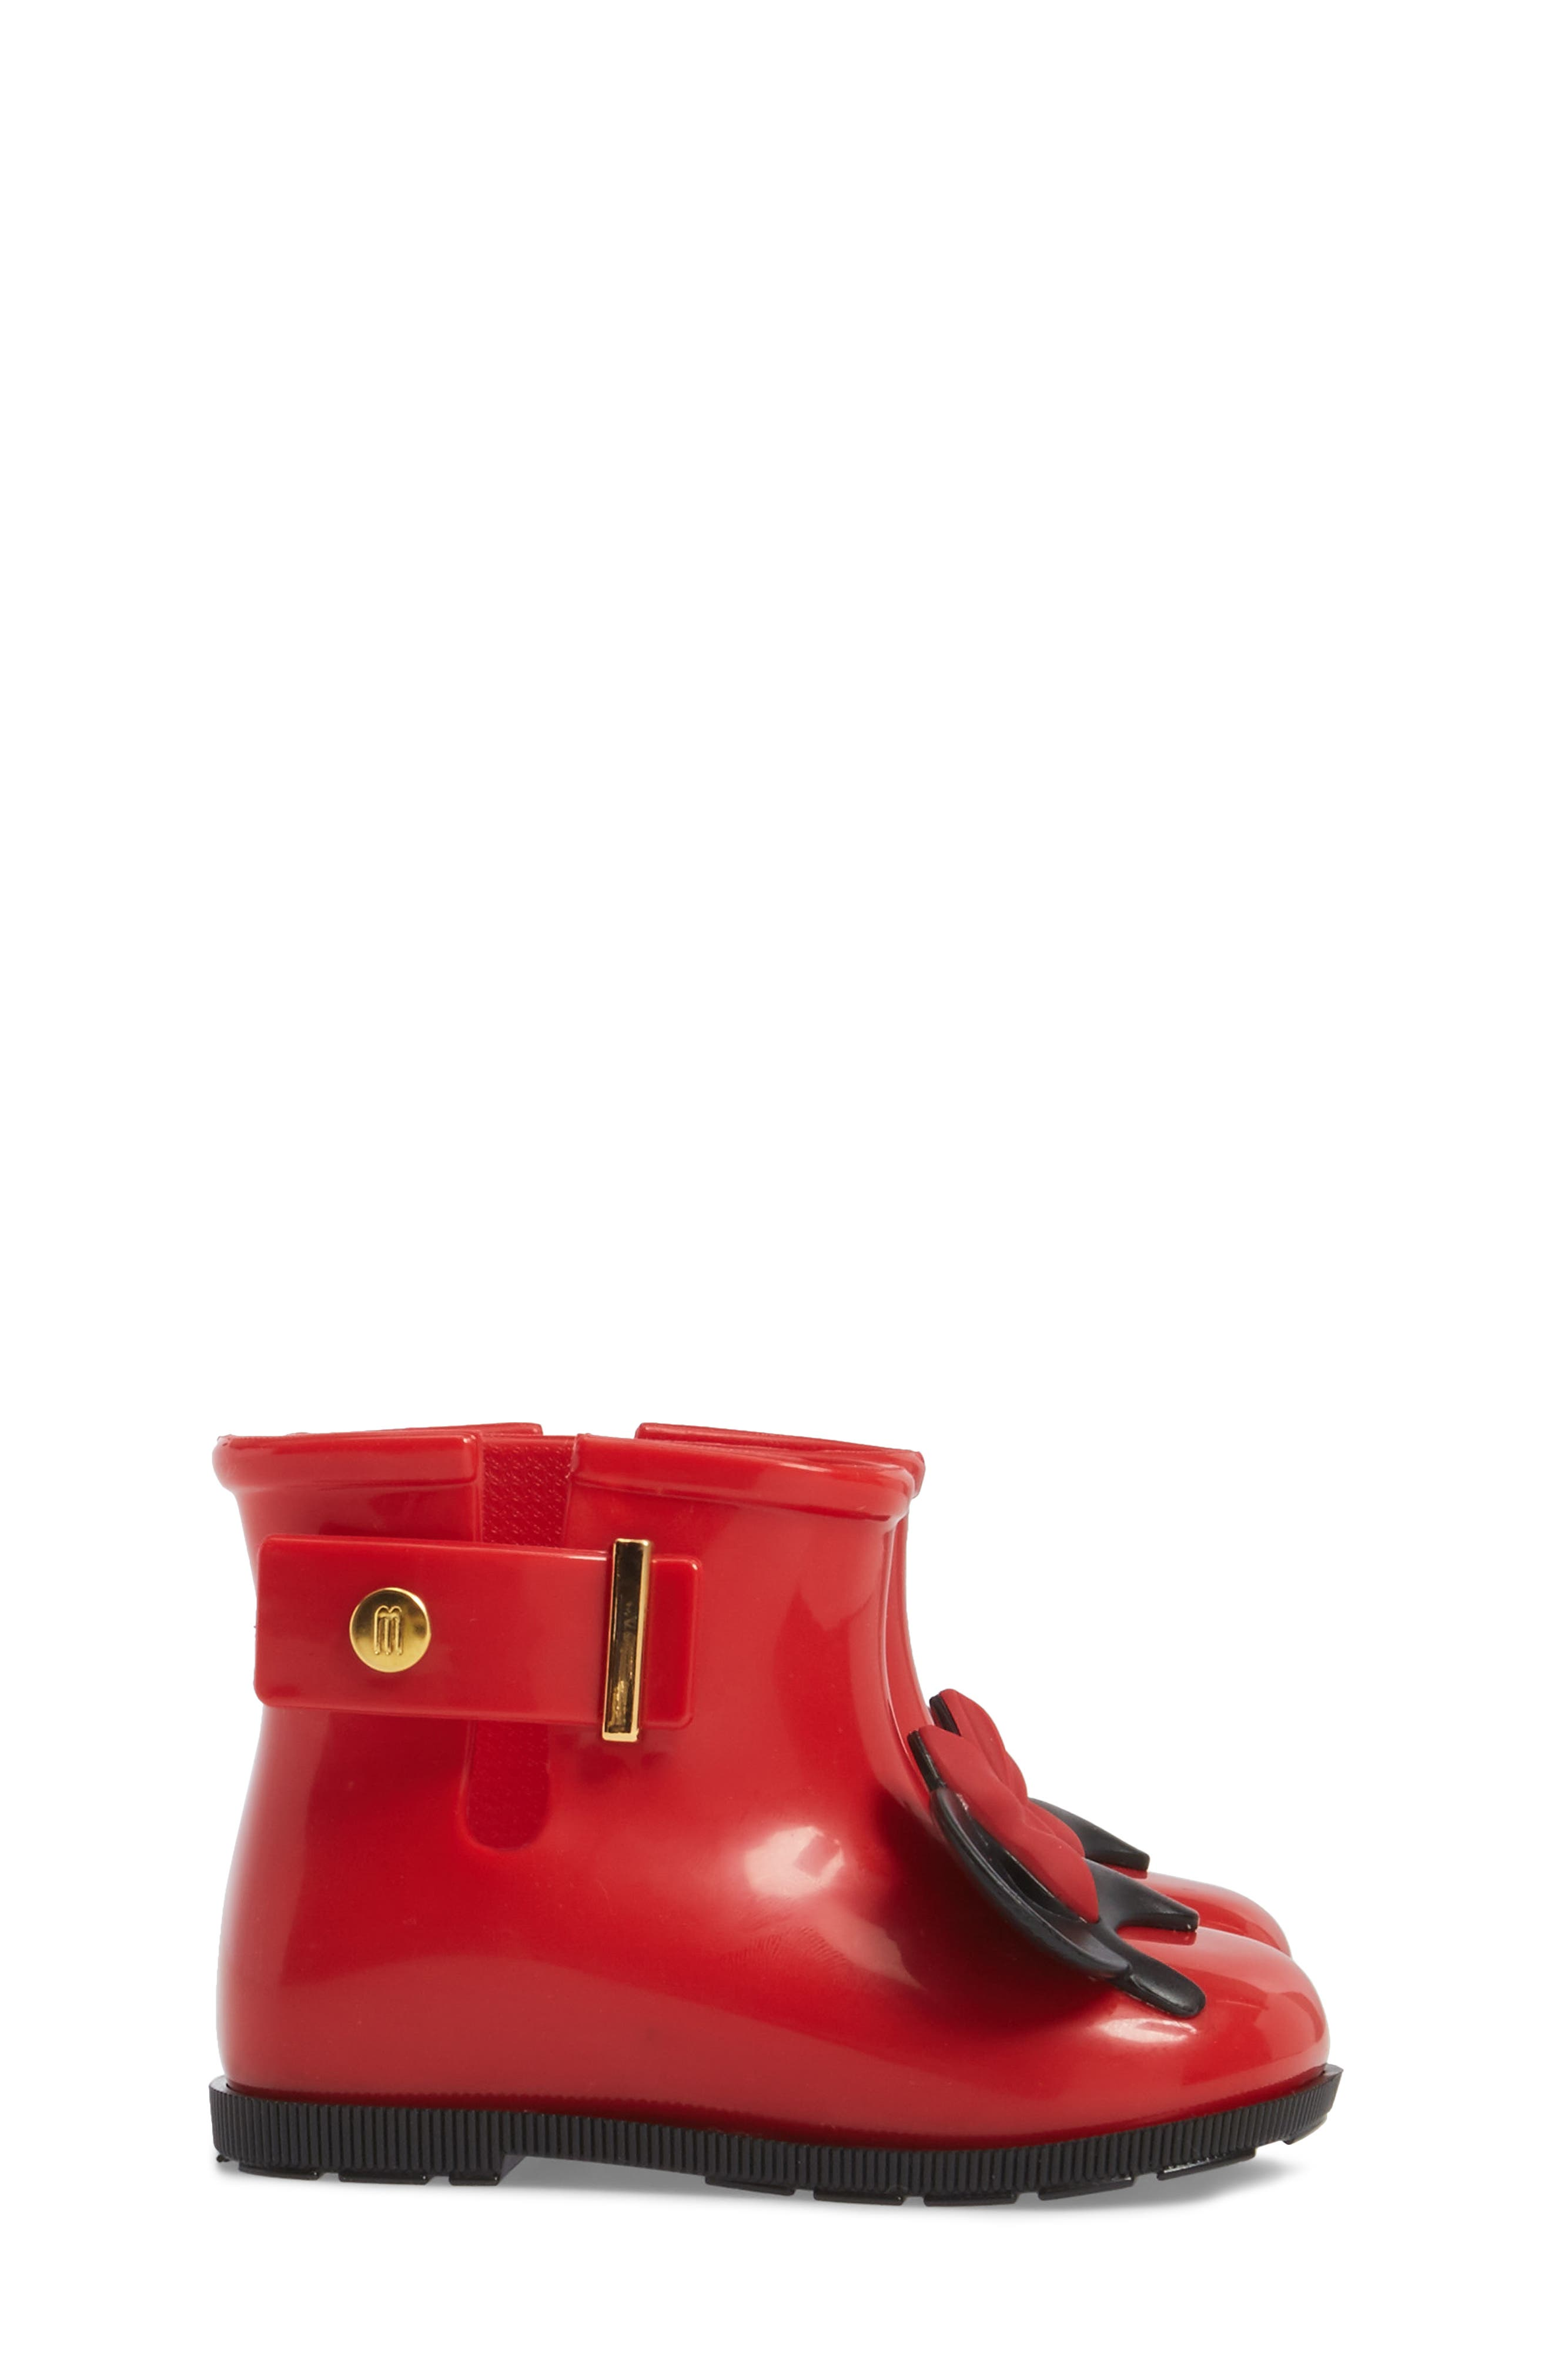 Mini Melissa Sugar Rain Disney Twins Waterproof Bootie,                             Alternate thumbnail 3, color,                             Red